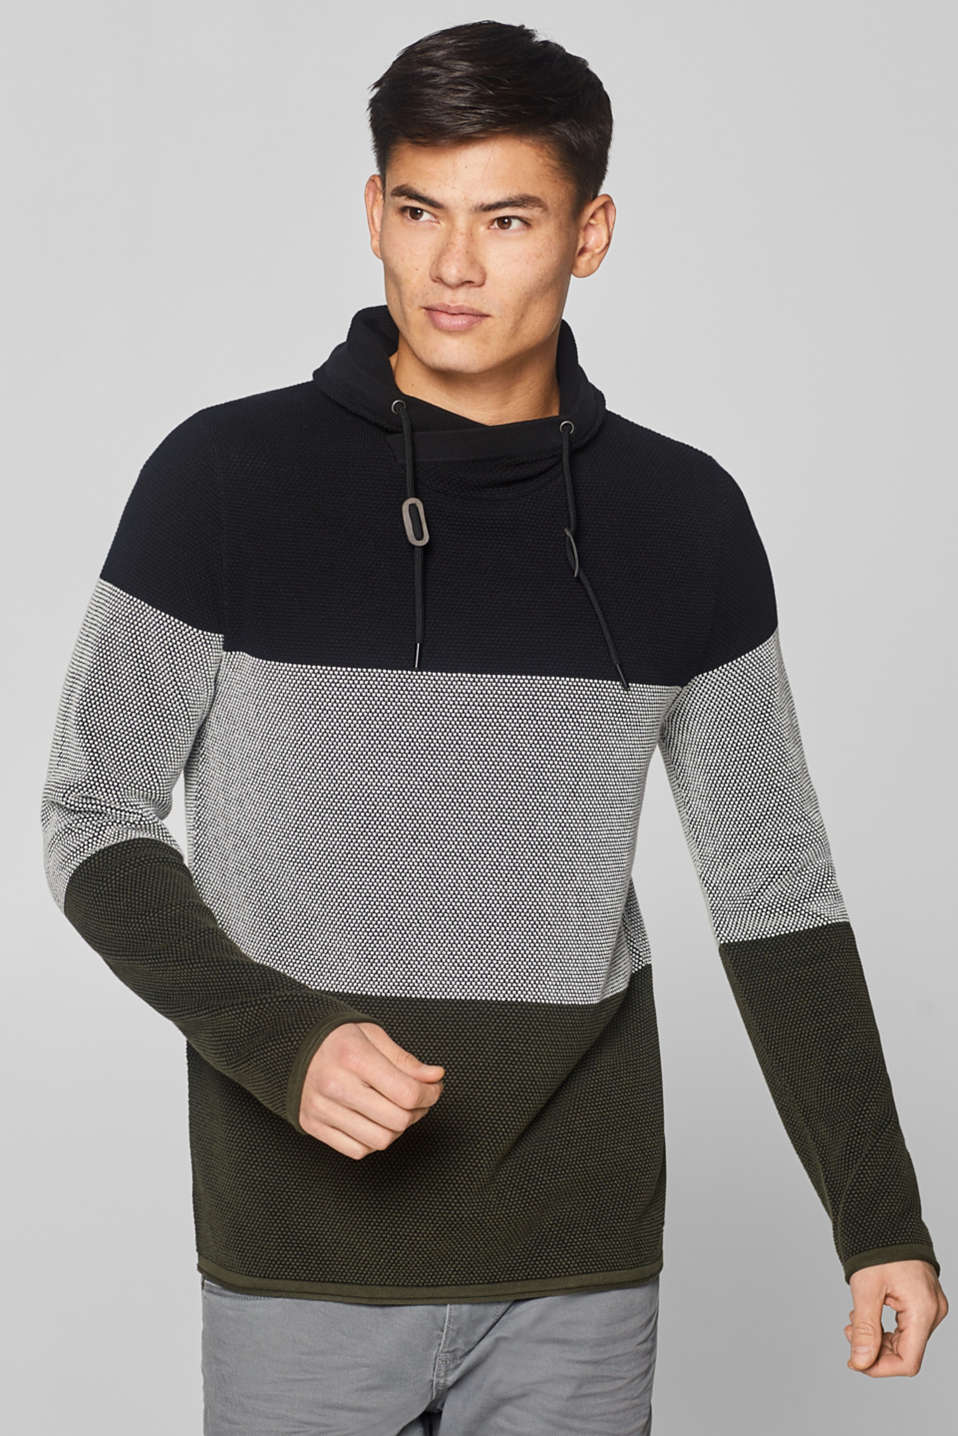 edc - Sweatshirt with a drawstring collar, 100% cotton